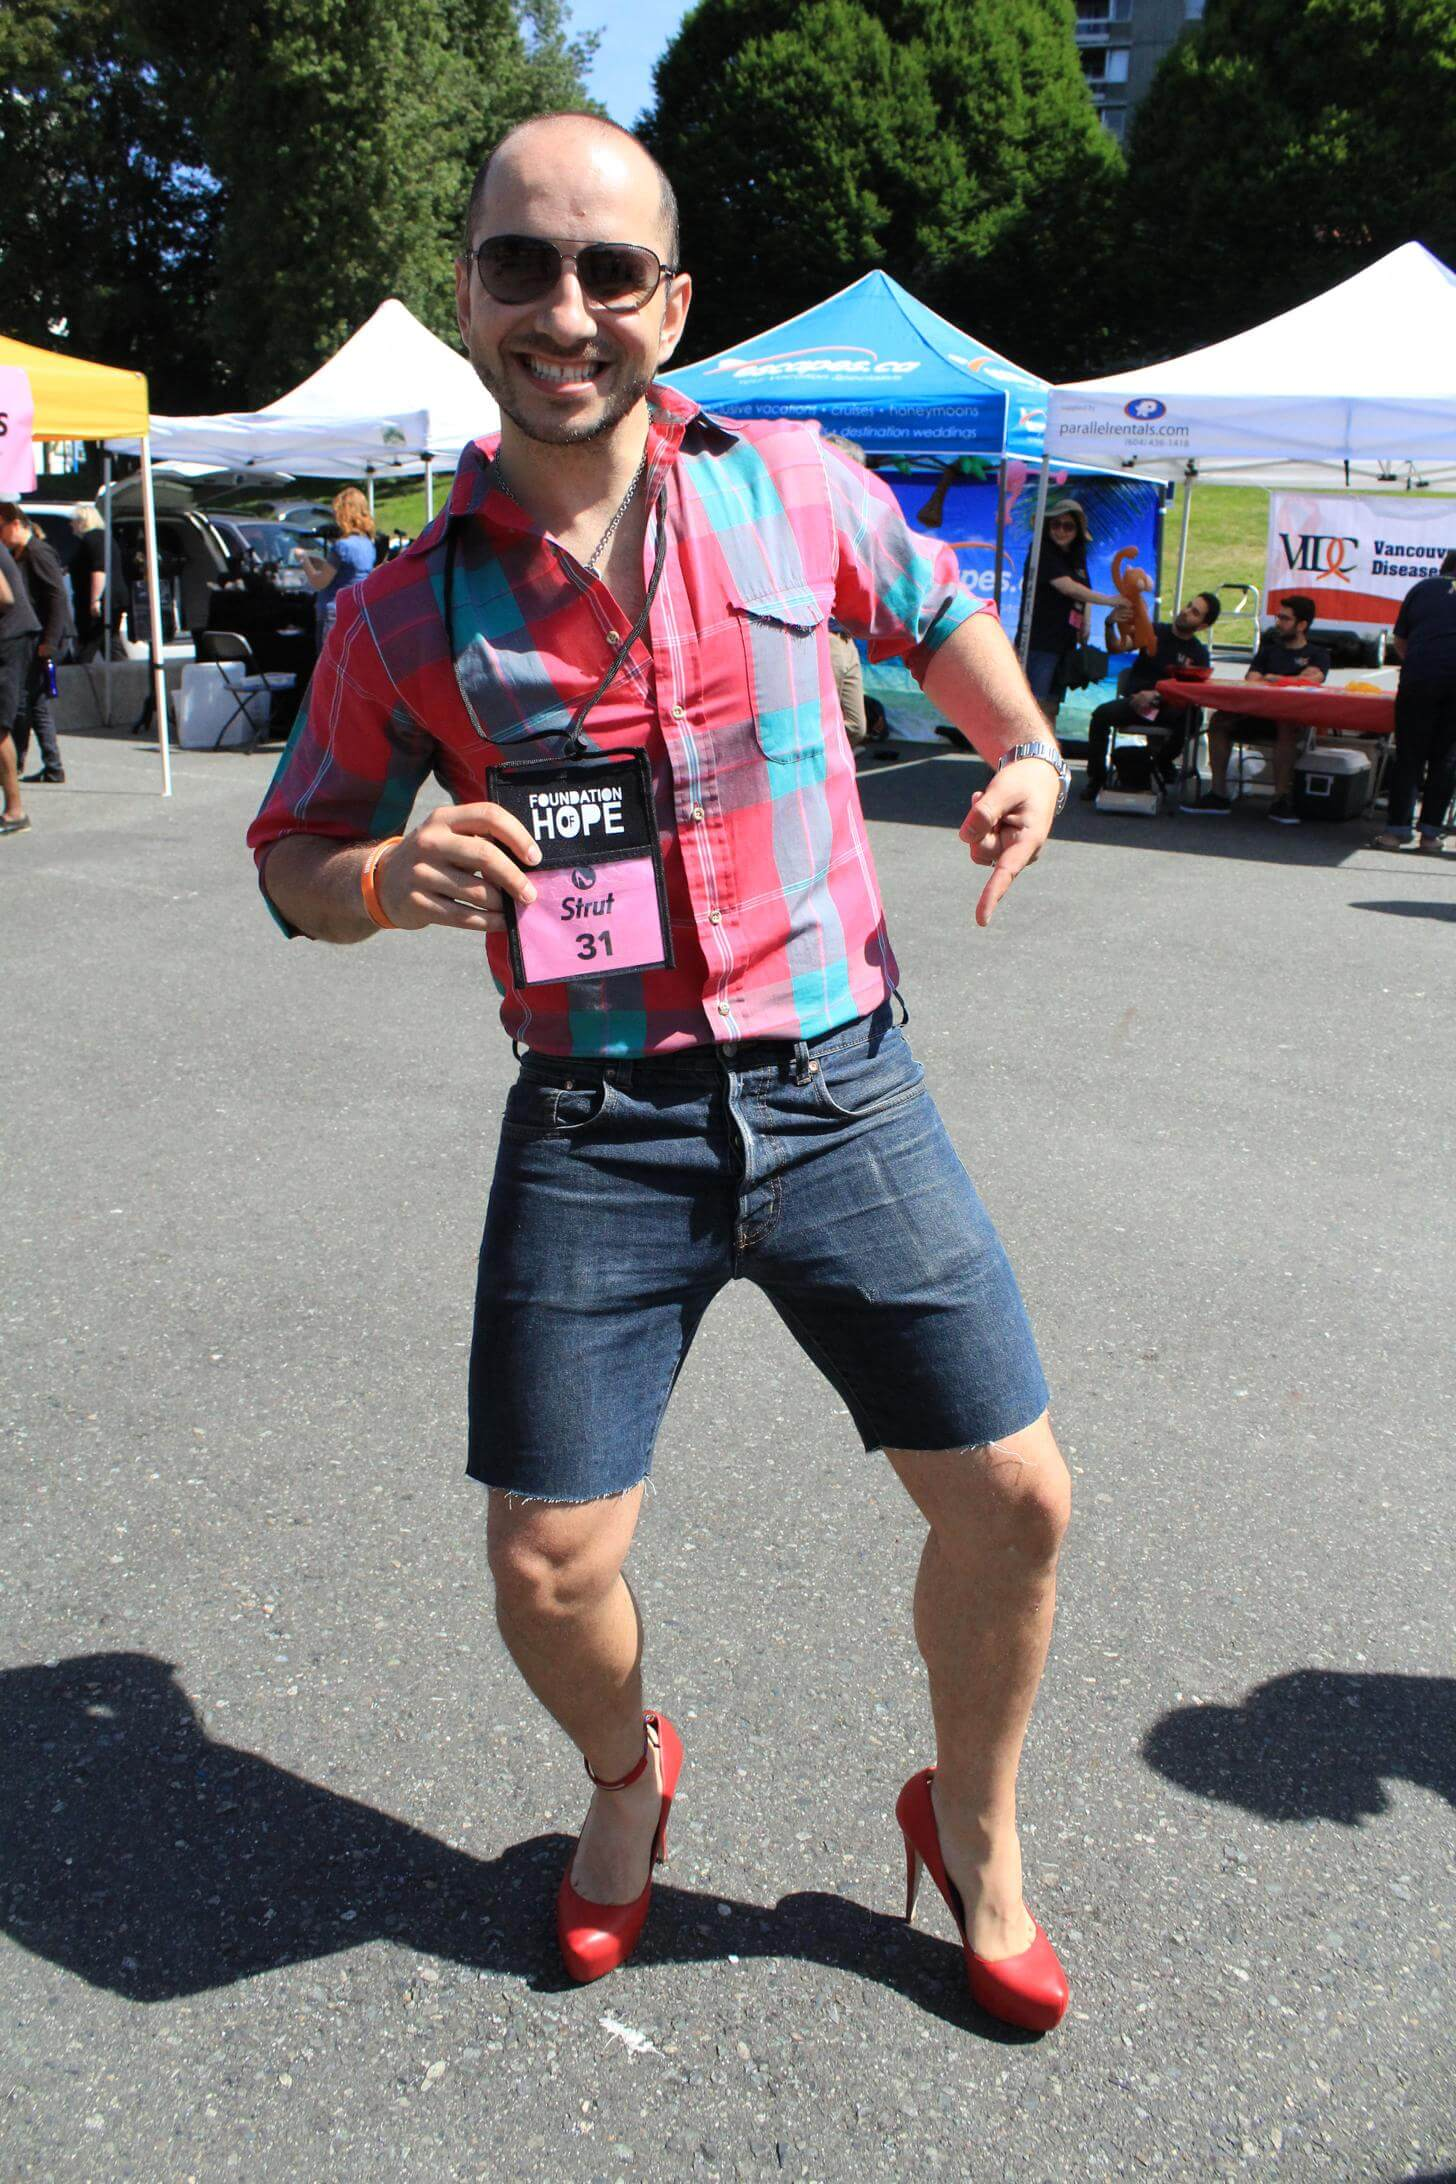 Vancouver Strut For Hope 2015 (6)